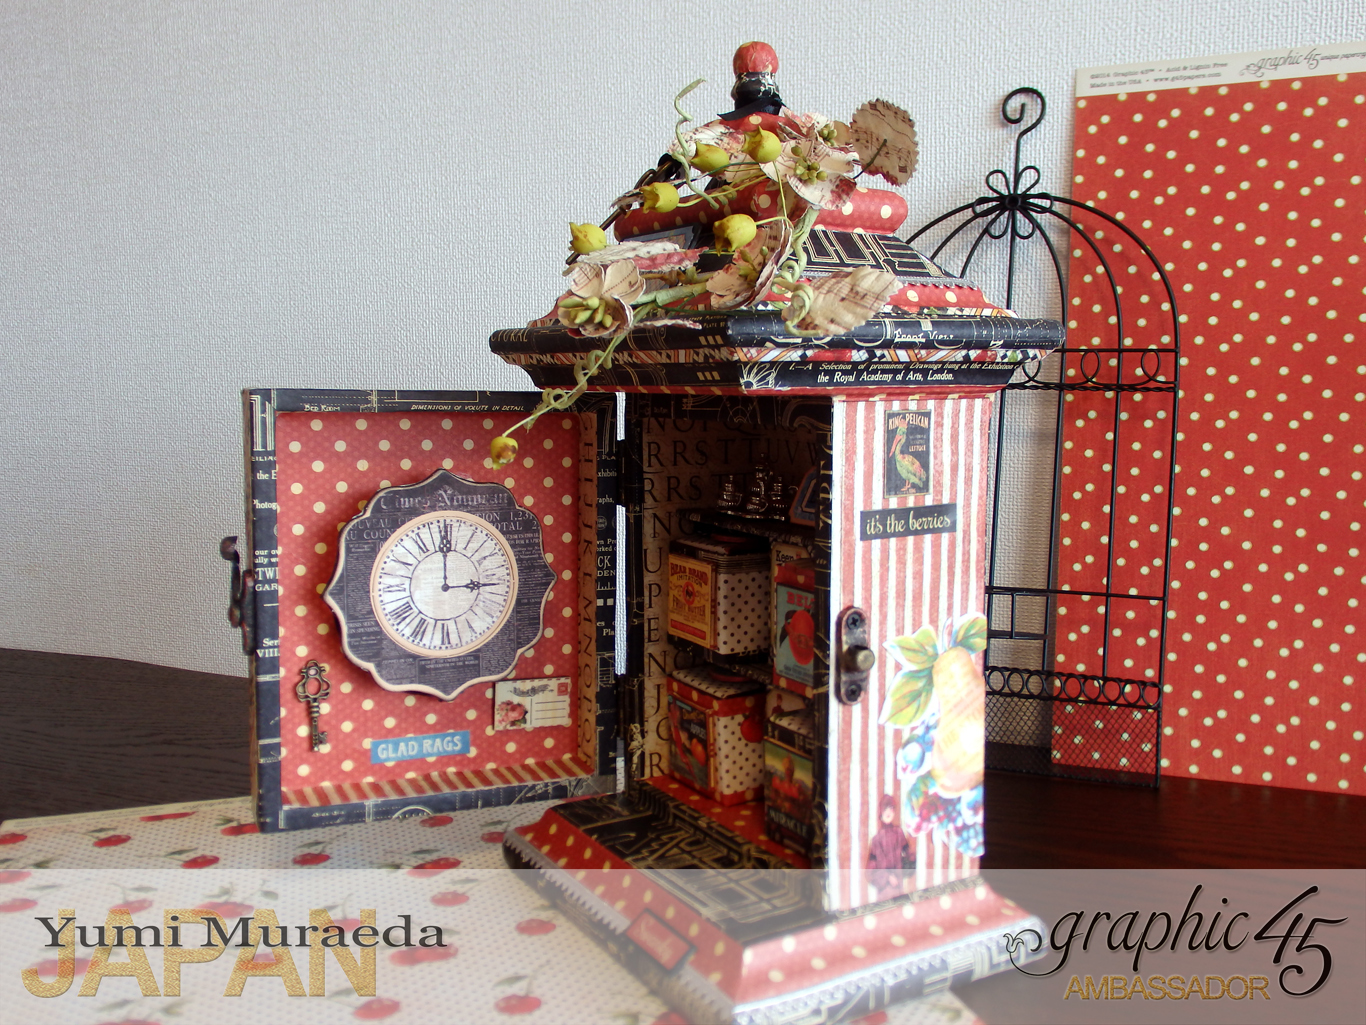 12Up Cycle Graphic45 DIY Craftpaper with Times Nouveau Secret Clock by Yumi Muraeada Product by Graphic 45 Photo